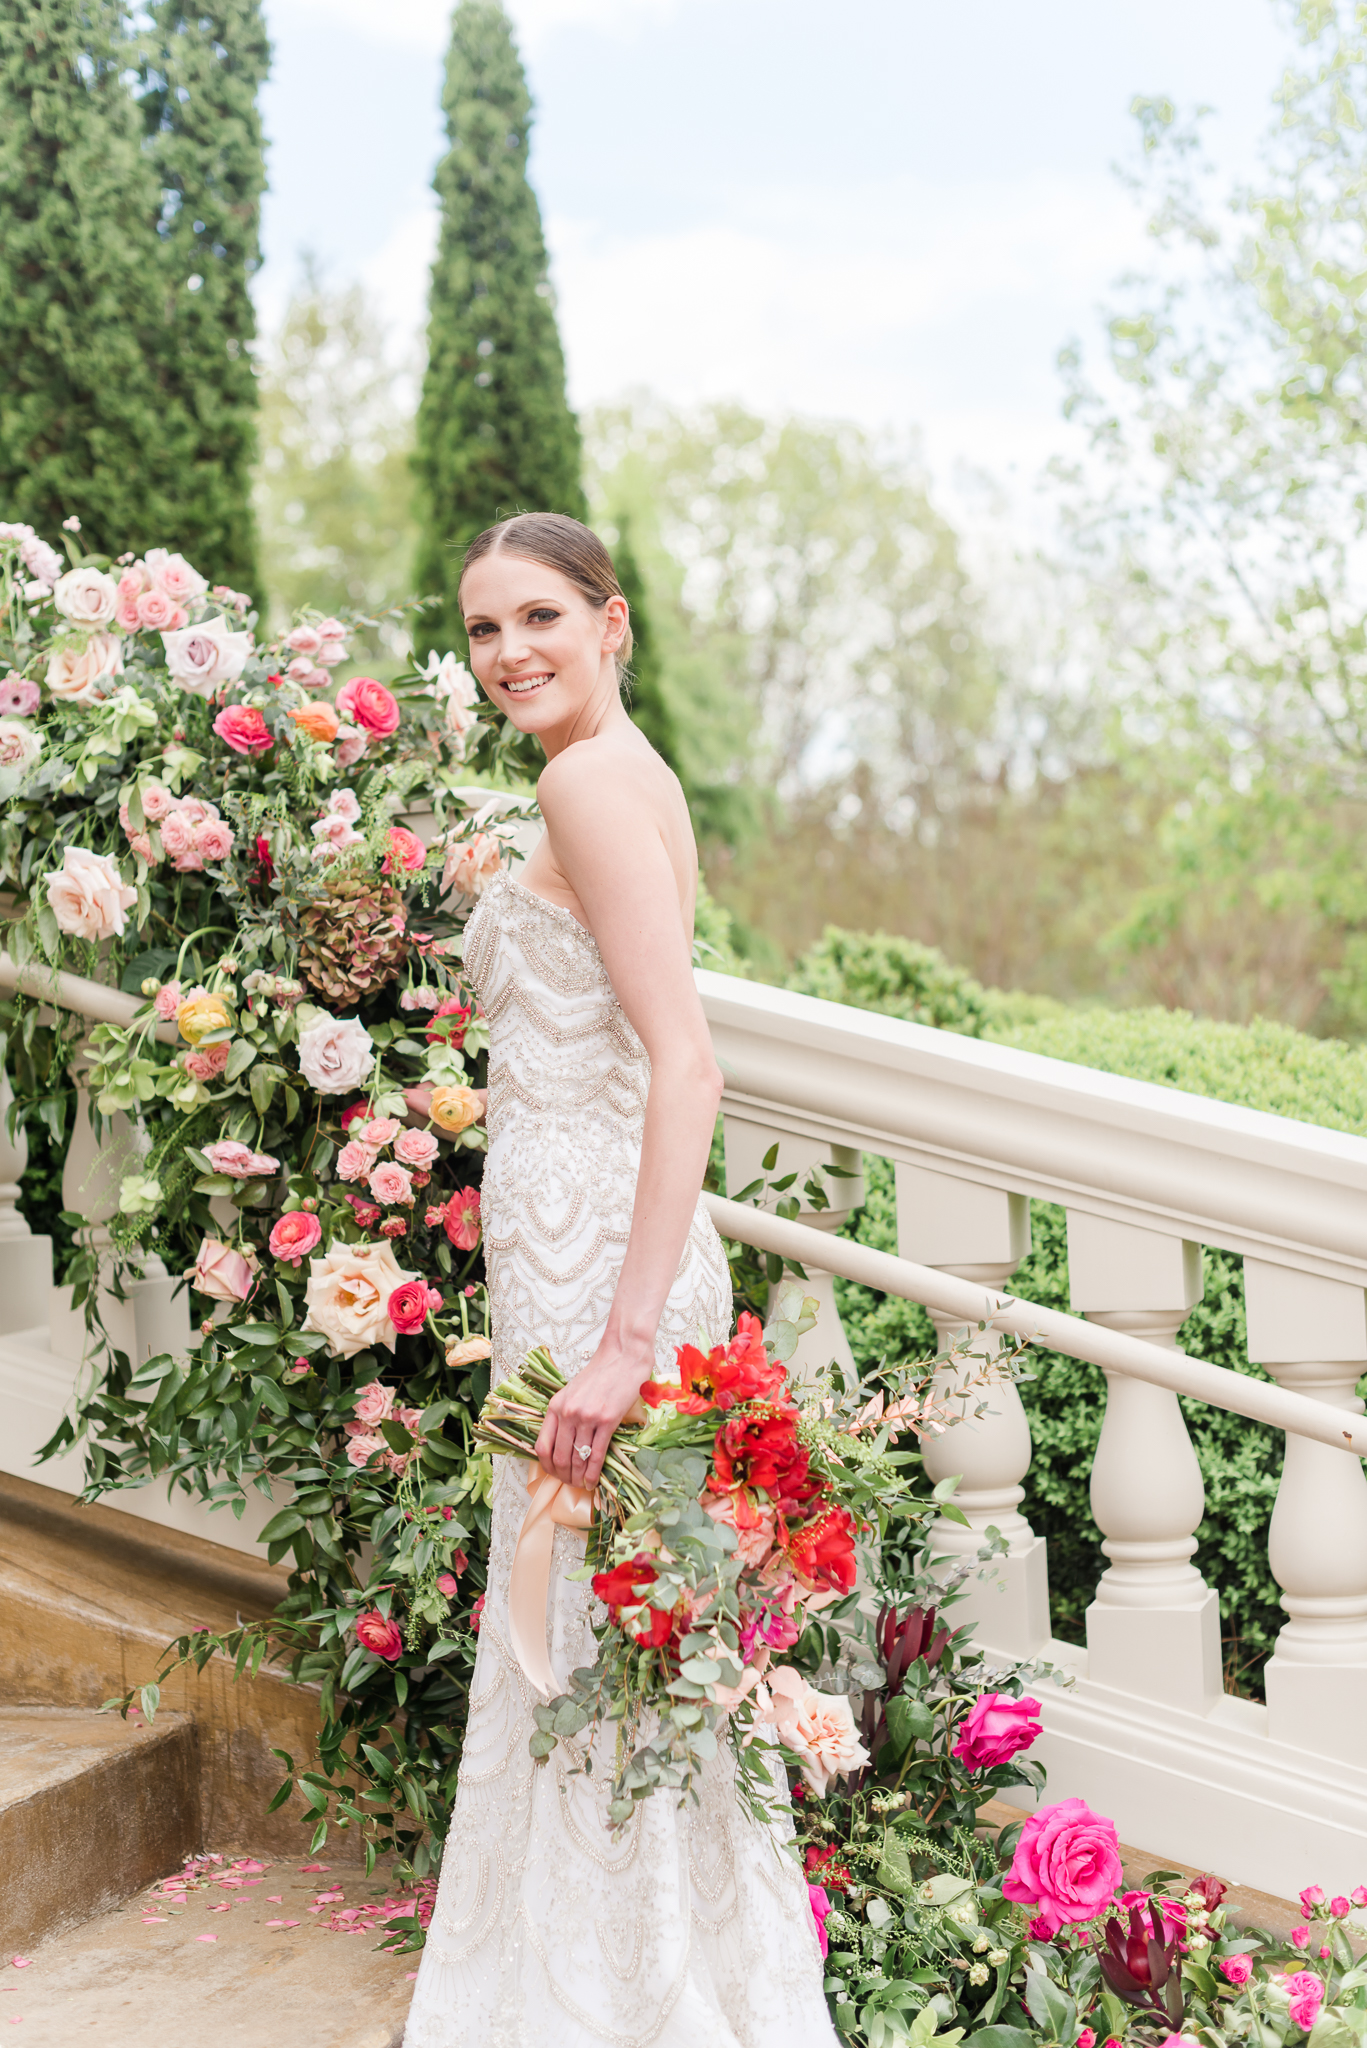 Wedding Day Bridal Portraits with flowers-19.jpg